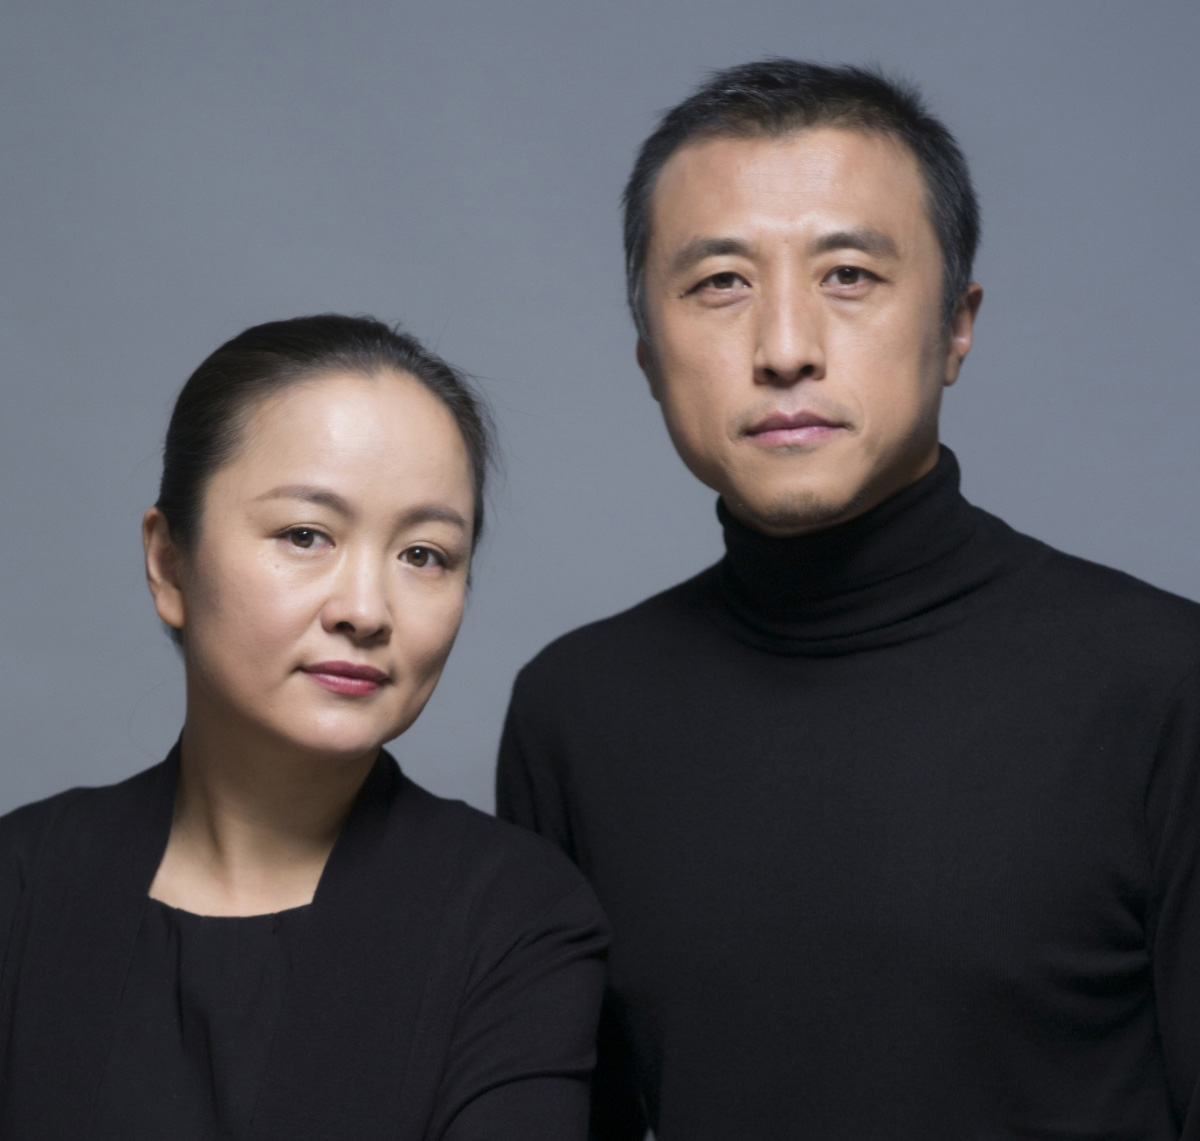 An Asian man and woman in black next to each other